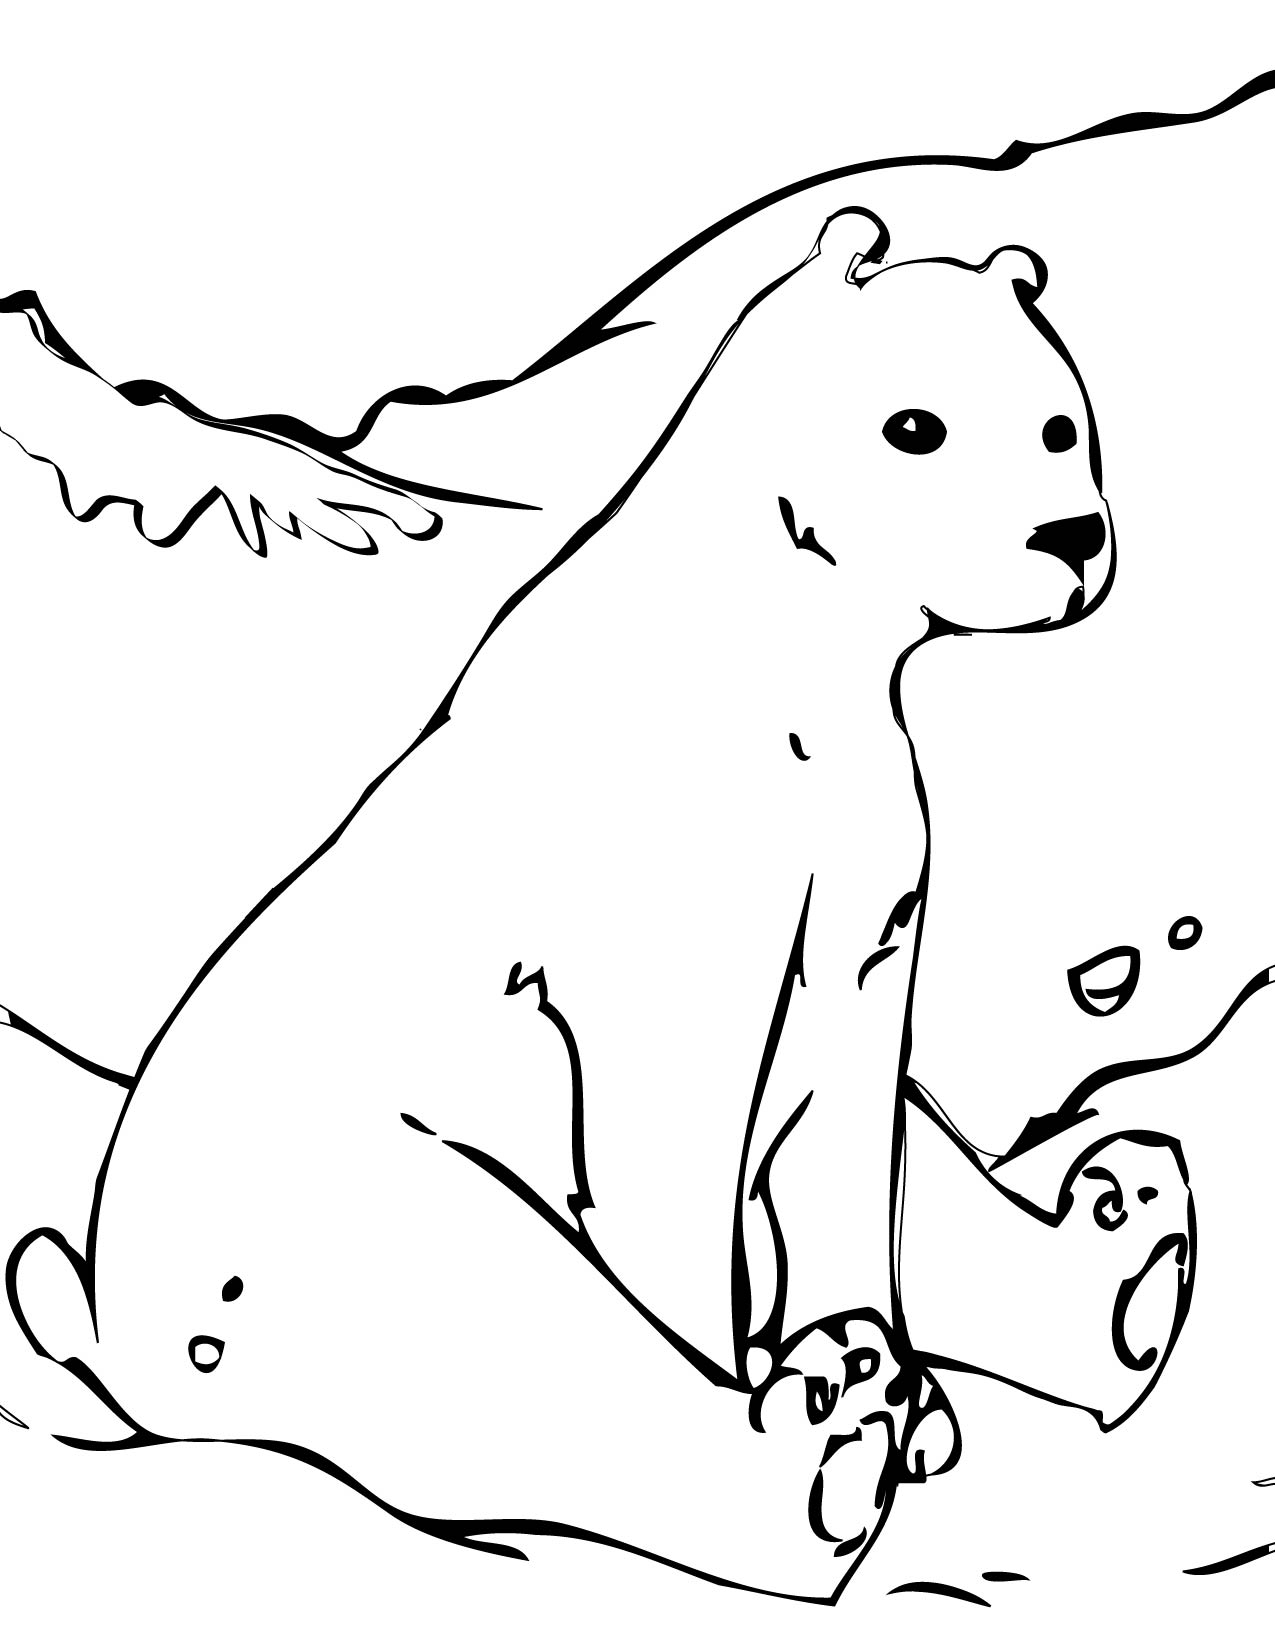 Polar animals coloring pages for kids - Polar Bear Coloring Pages Images